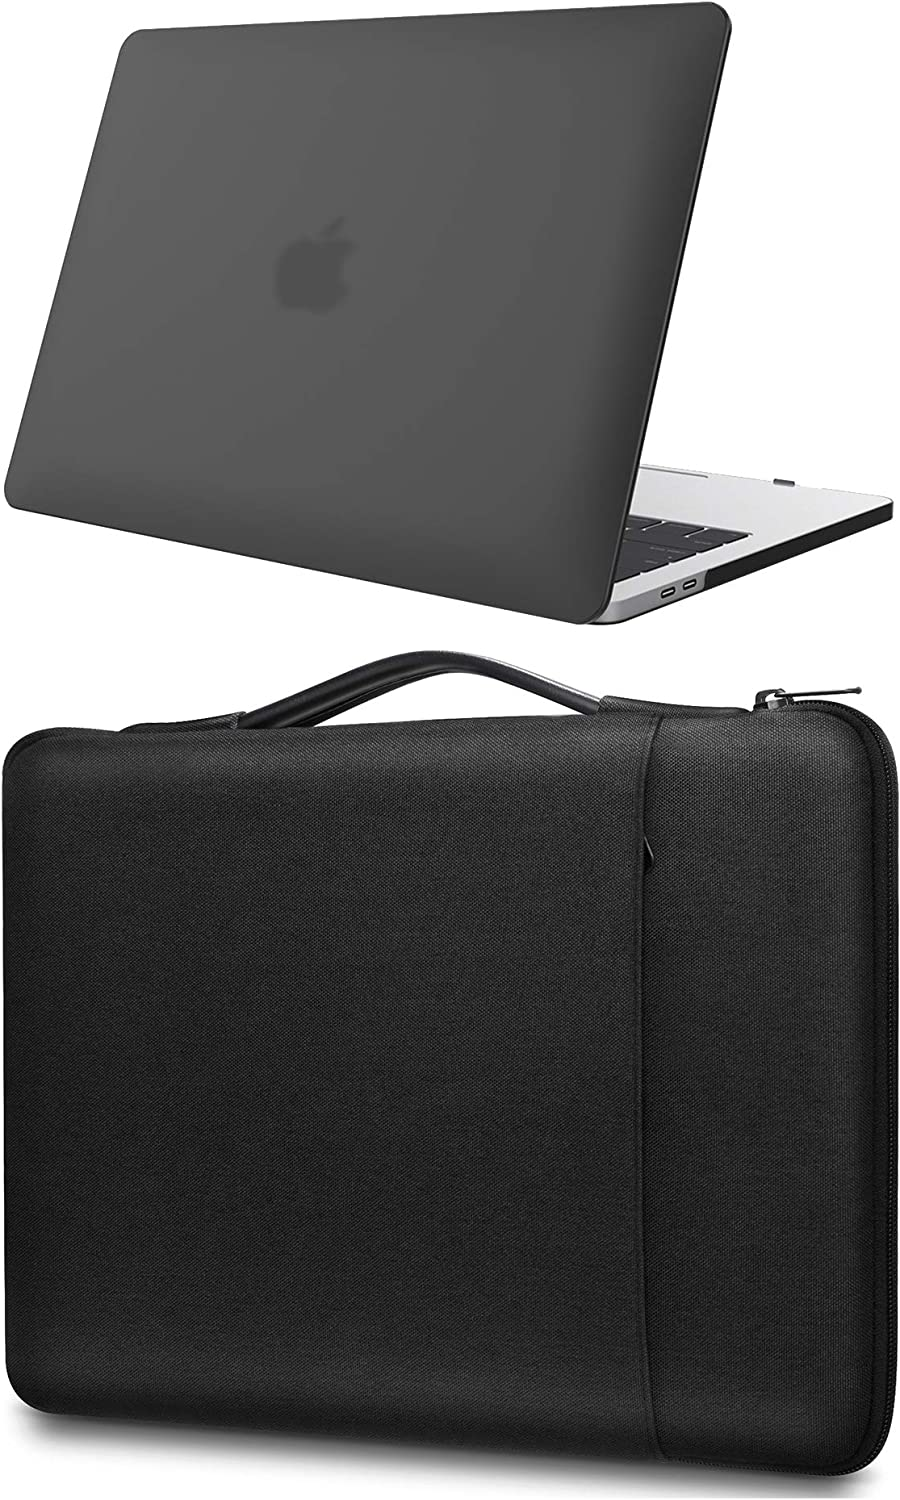 ProCase MacBook Pro 13 Inch Hard Shell Case + Sleeve Bag, Compatible with 2020 2019 2018 2017 2016 Release MacBook Pro 13-inch A2289 A2251 A2159 A1989 A1706 A1708 -Black